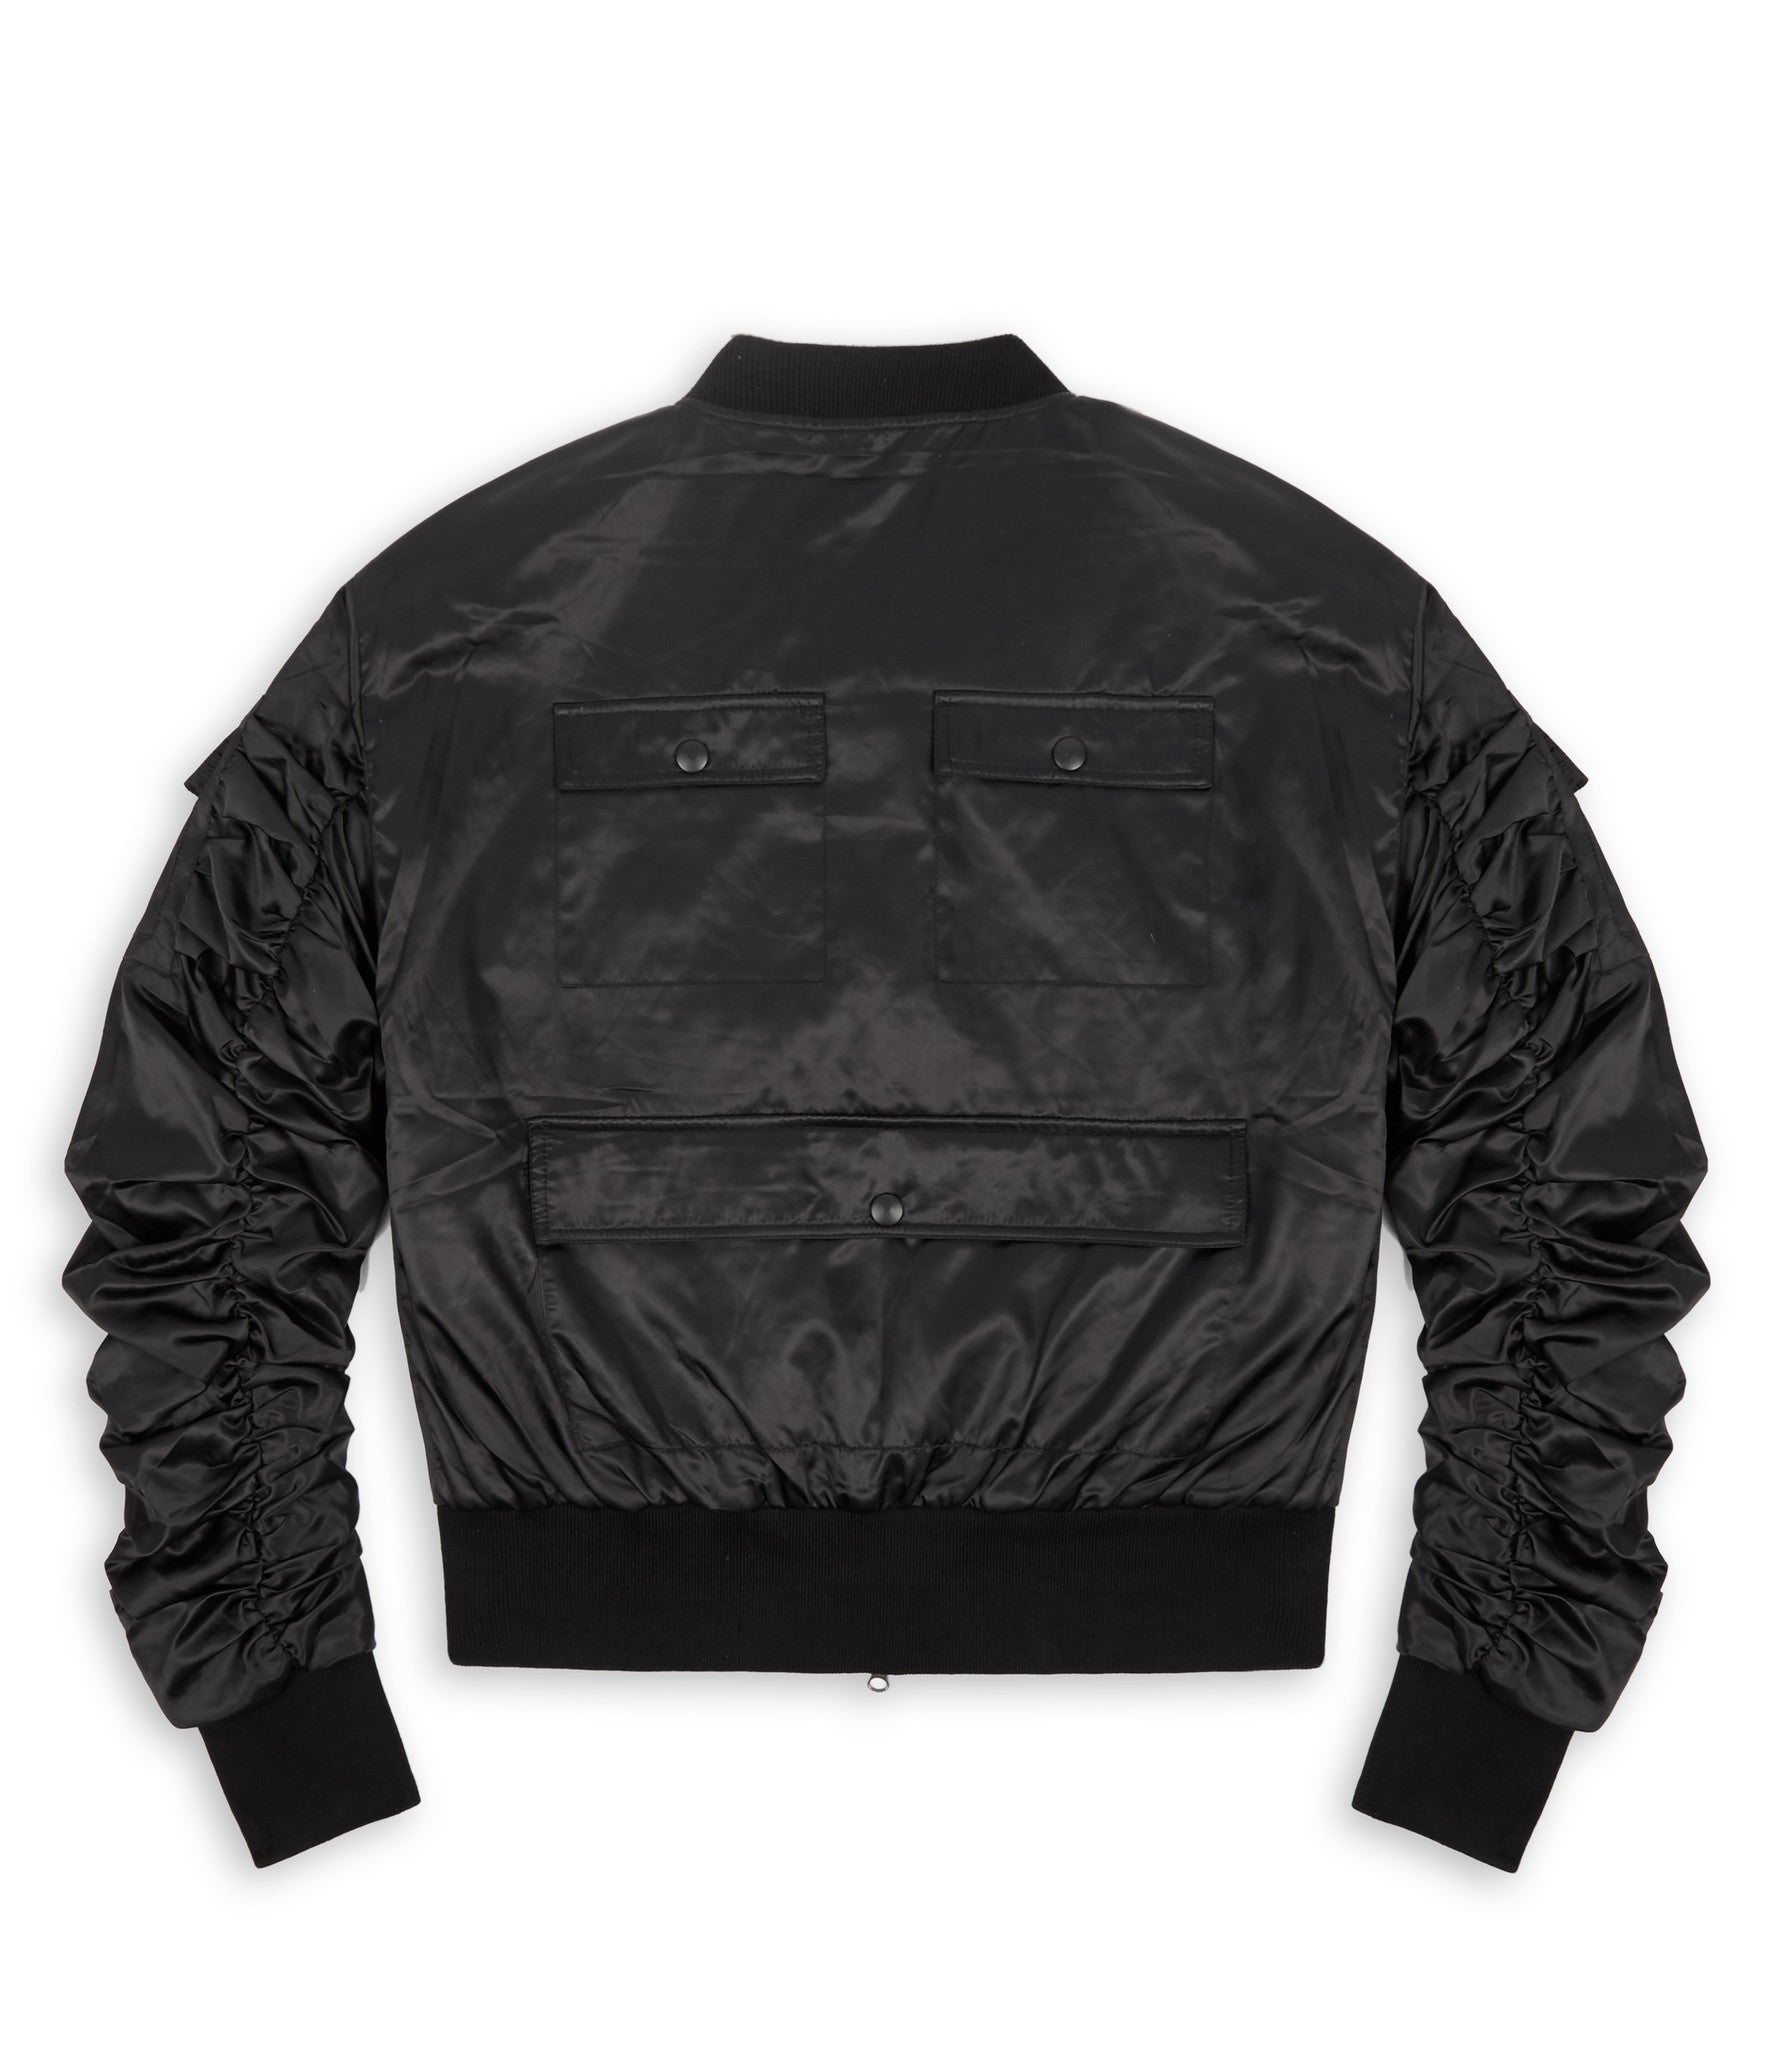 JK263 Exile Tactical Bomber Jacket - Black - underated london - underatedco - 2